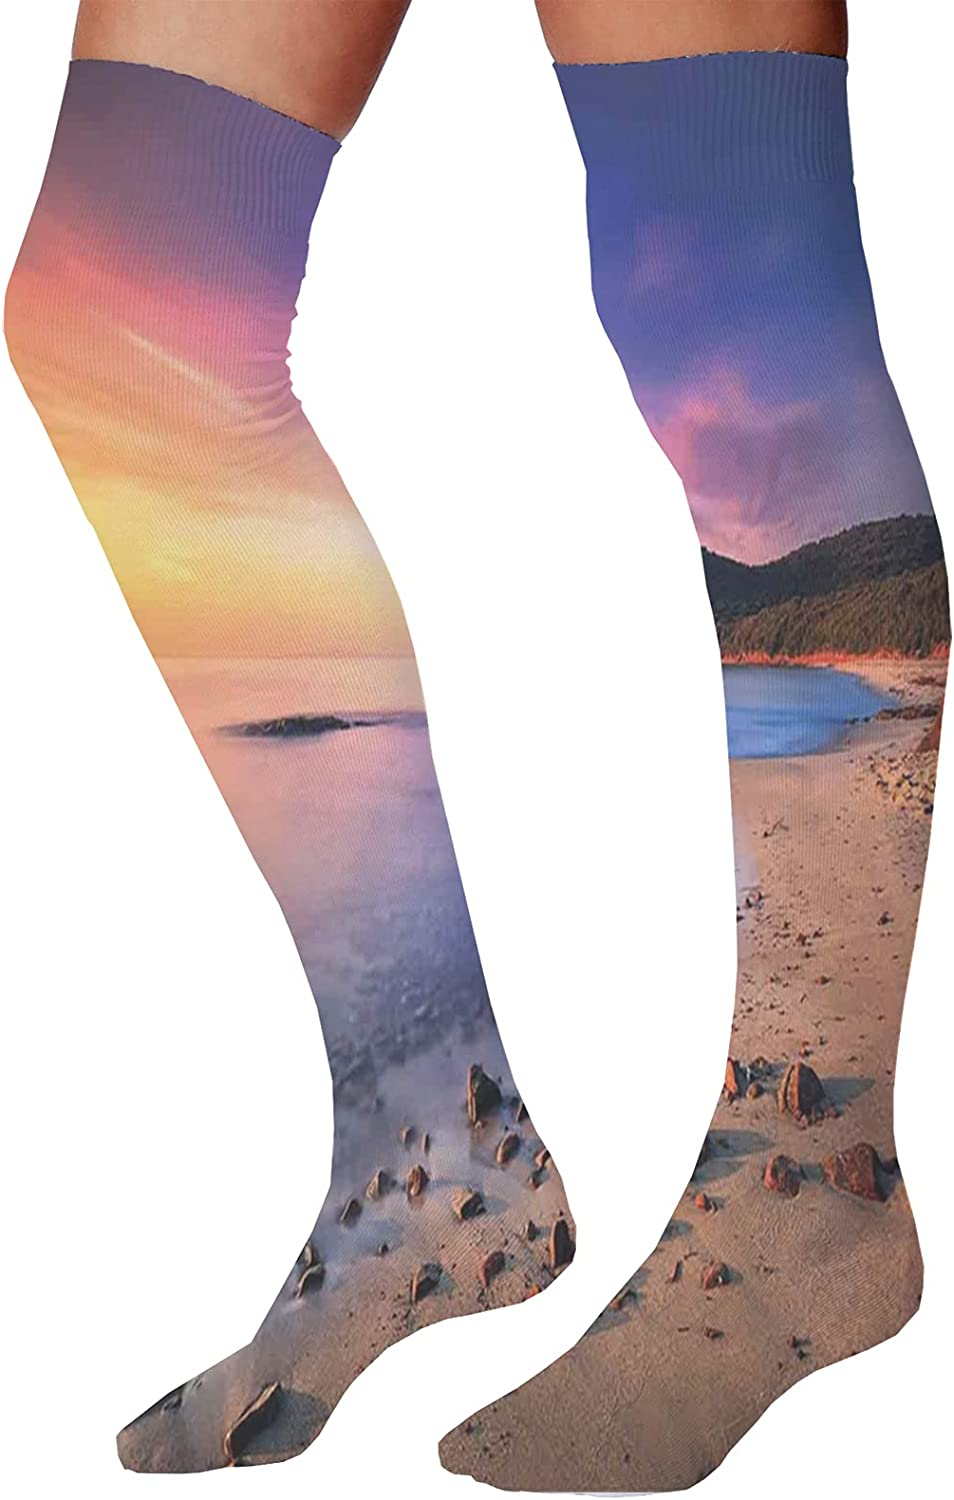 Unisex Dress Cool Colorful Fancy Novelty Funny Casual Combed Cotton Crew SocksFamous Mediterranean Sun Rise on The Beach with Pebbles Tourism Serene View Print